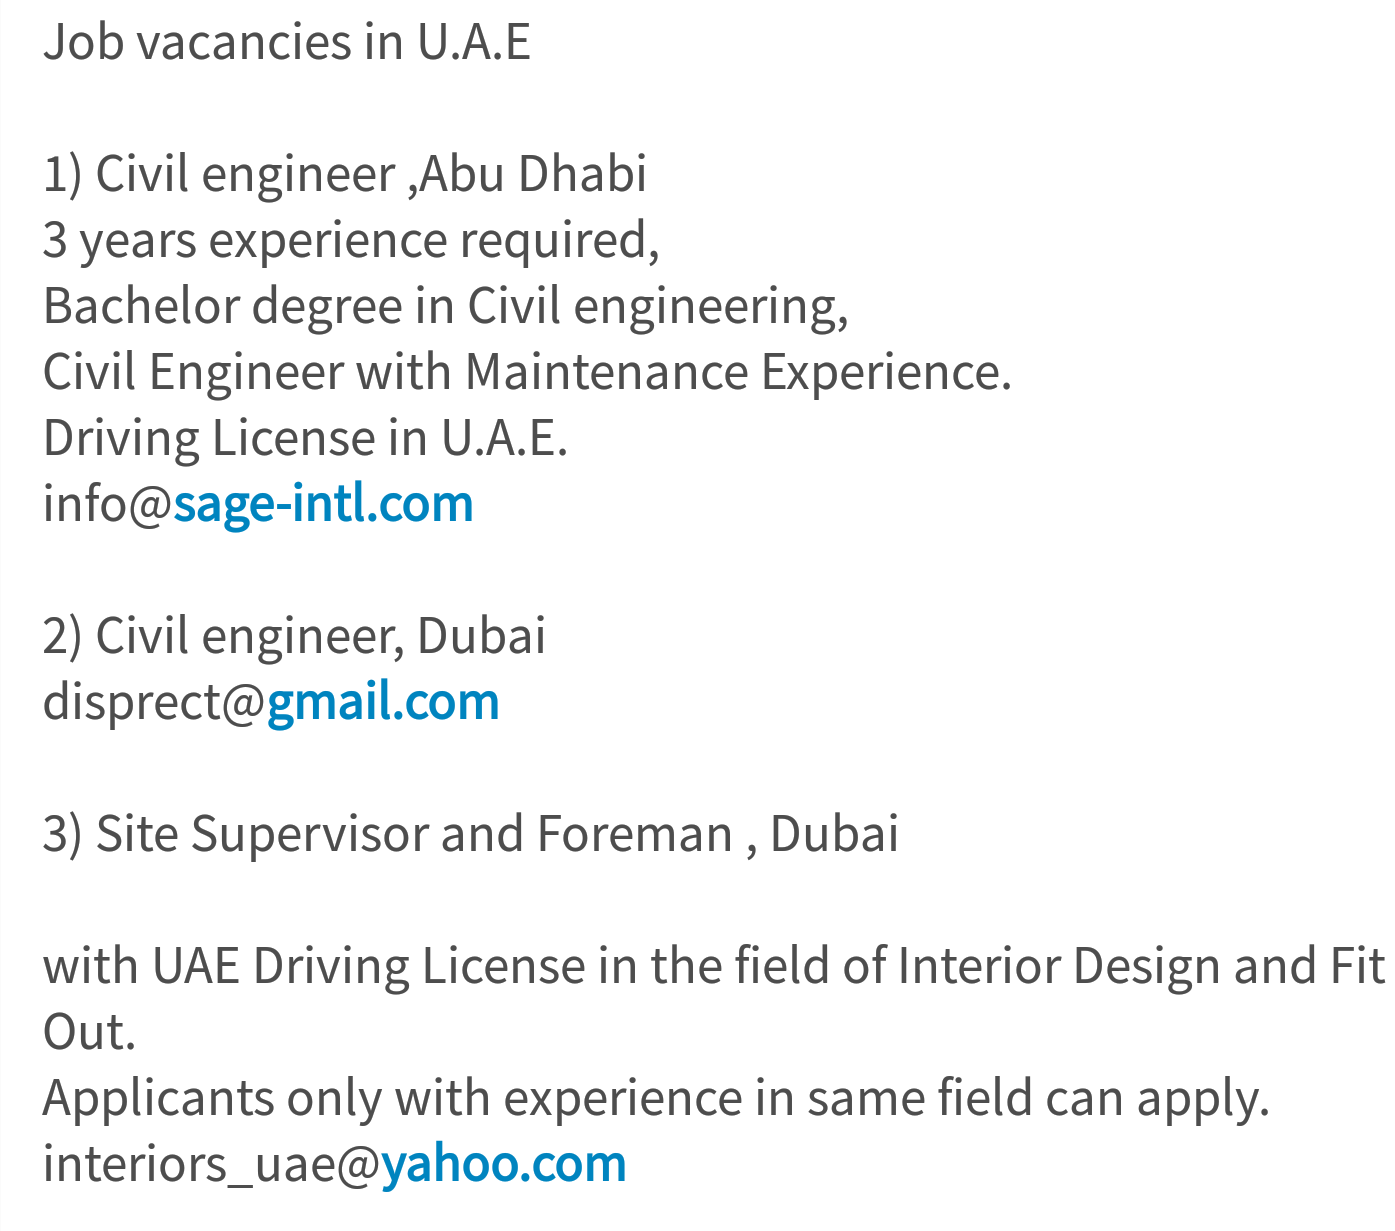 In The Field Of Interior Design And Fit Out Applicants Only With Experience Same Can Apply Interiors Uaeyahoo 198 Likes O 34 Comments